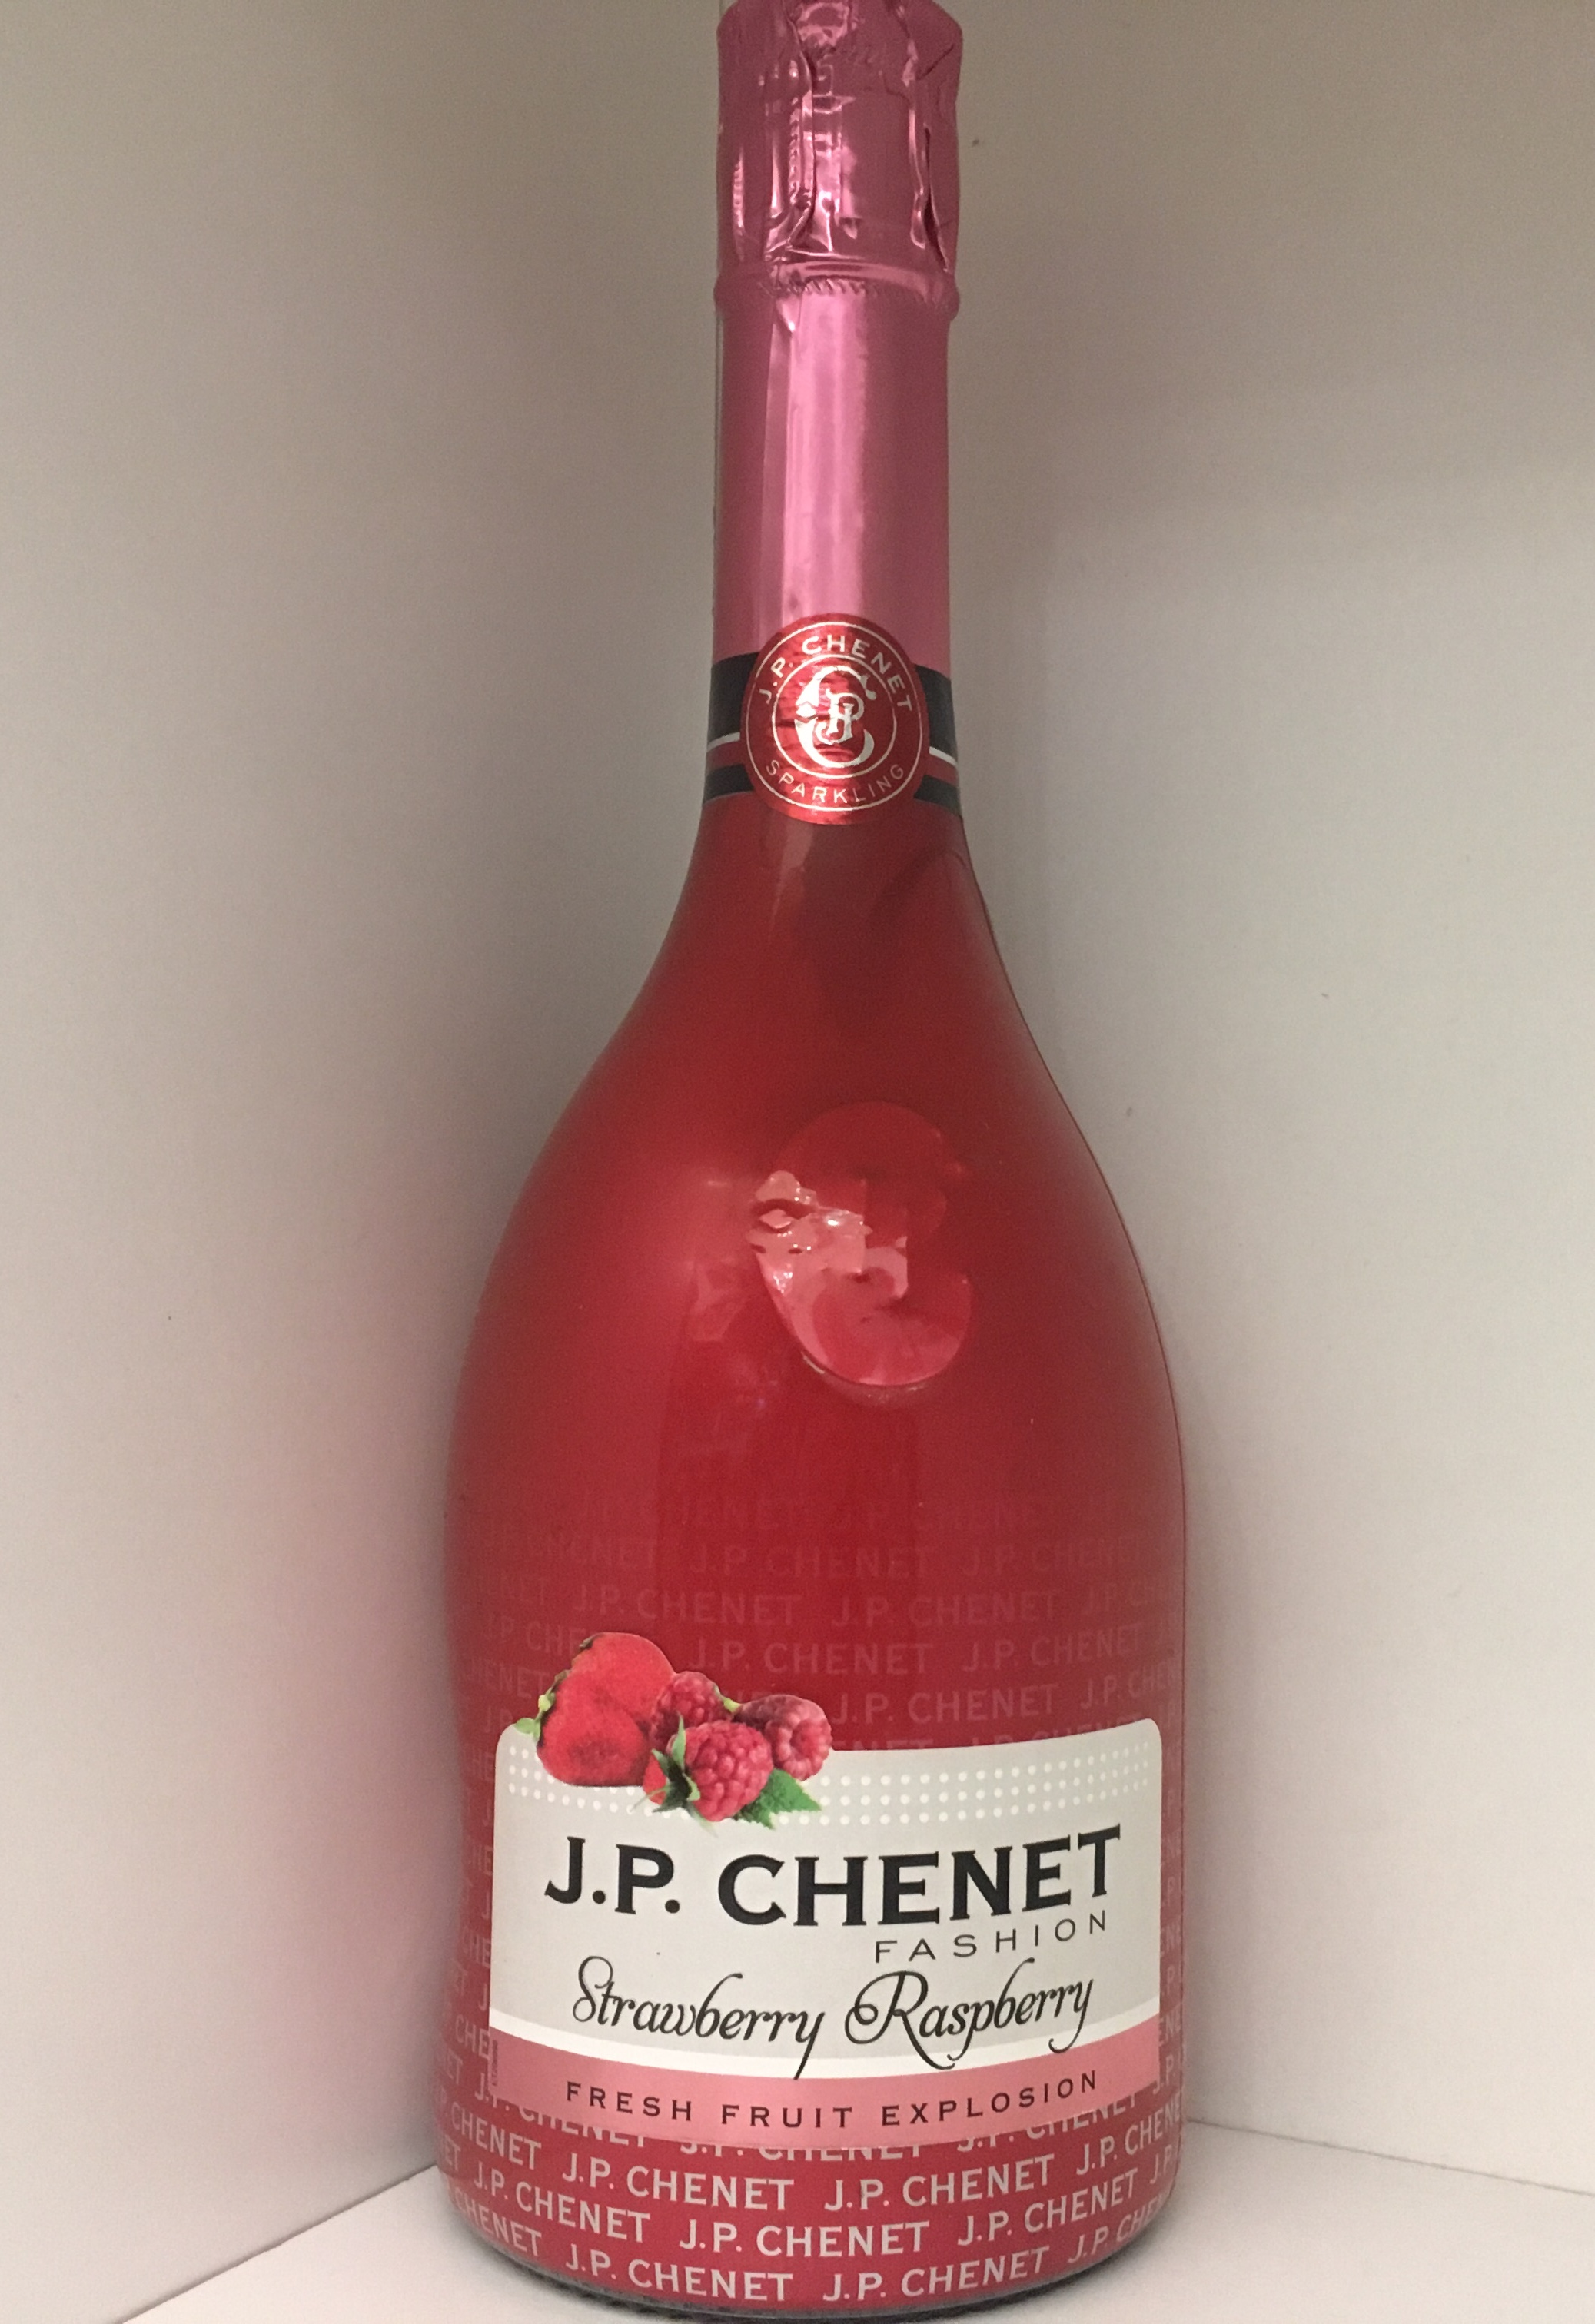 J.P. Chenet Fashion Strawberry Raspberry 0,75l